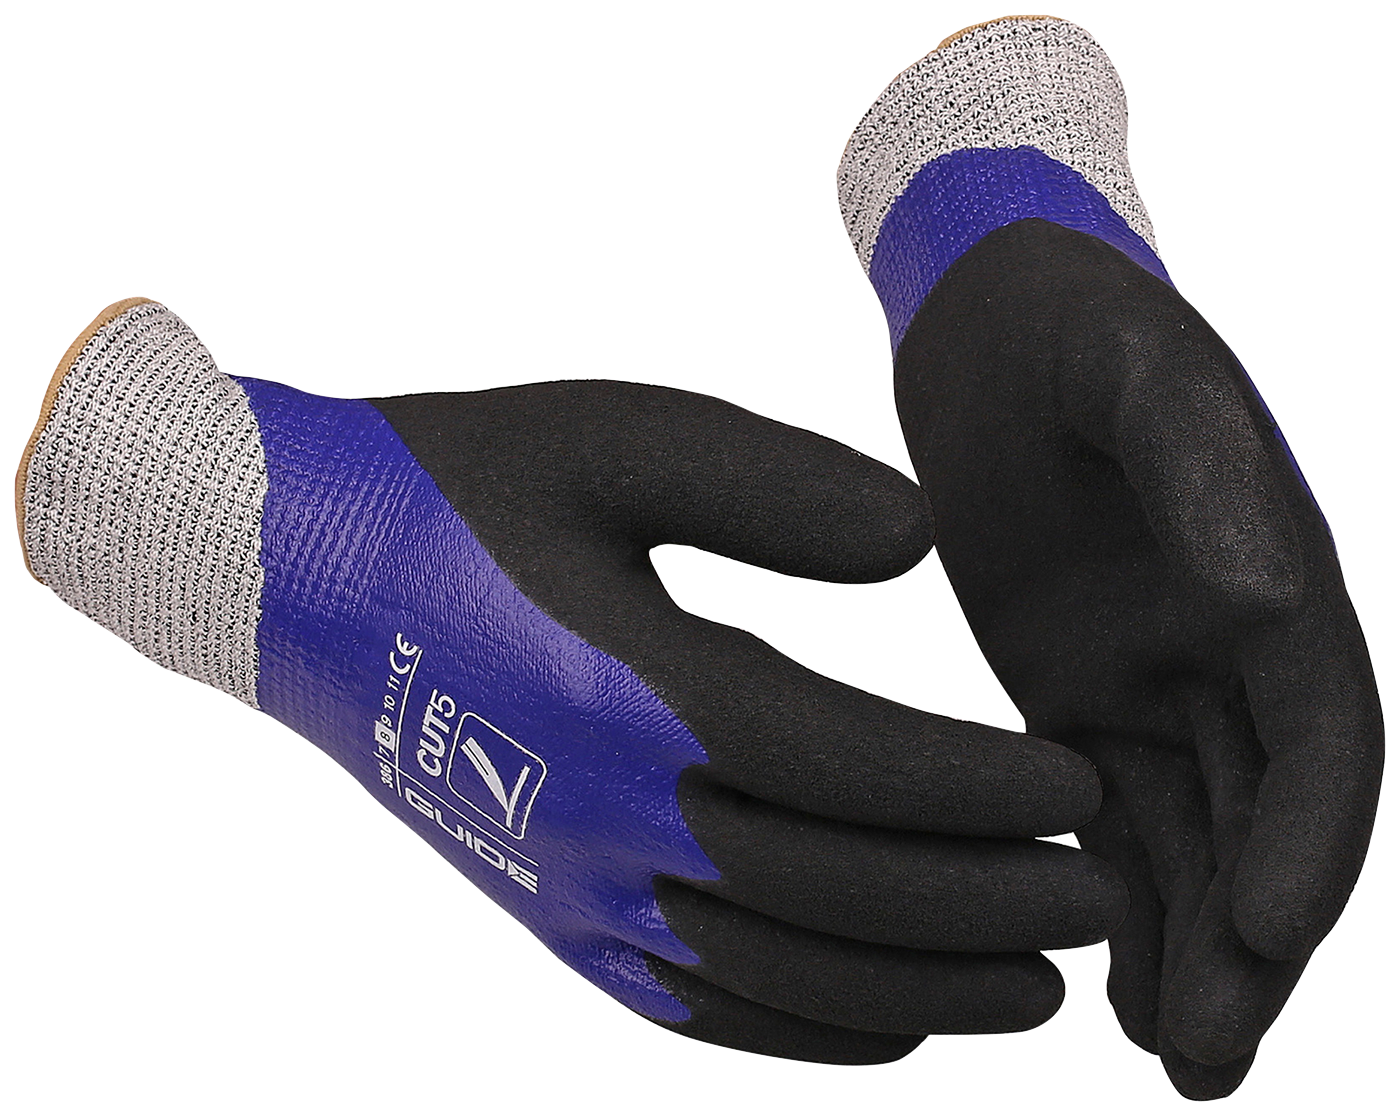 Cut Protection Glove GUIDE 386